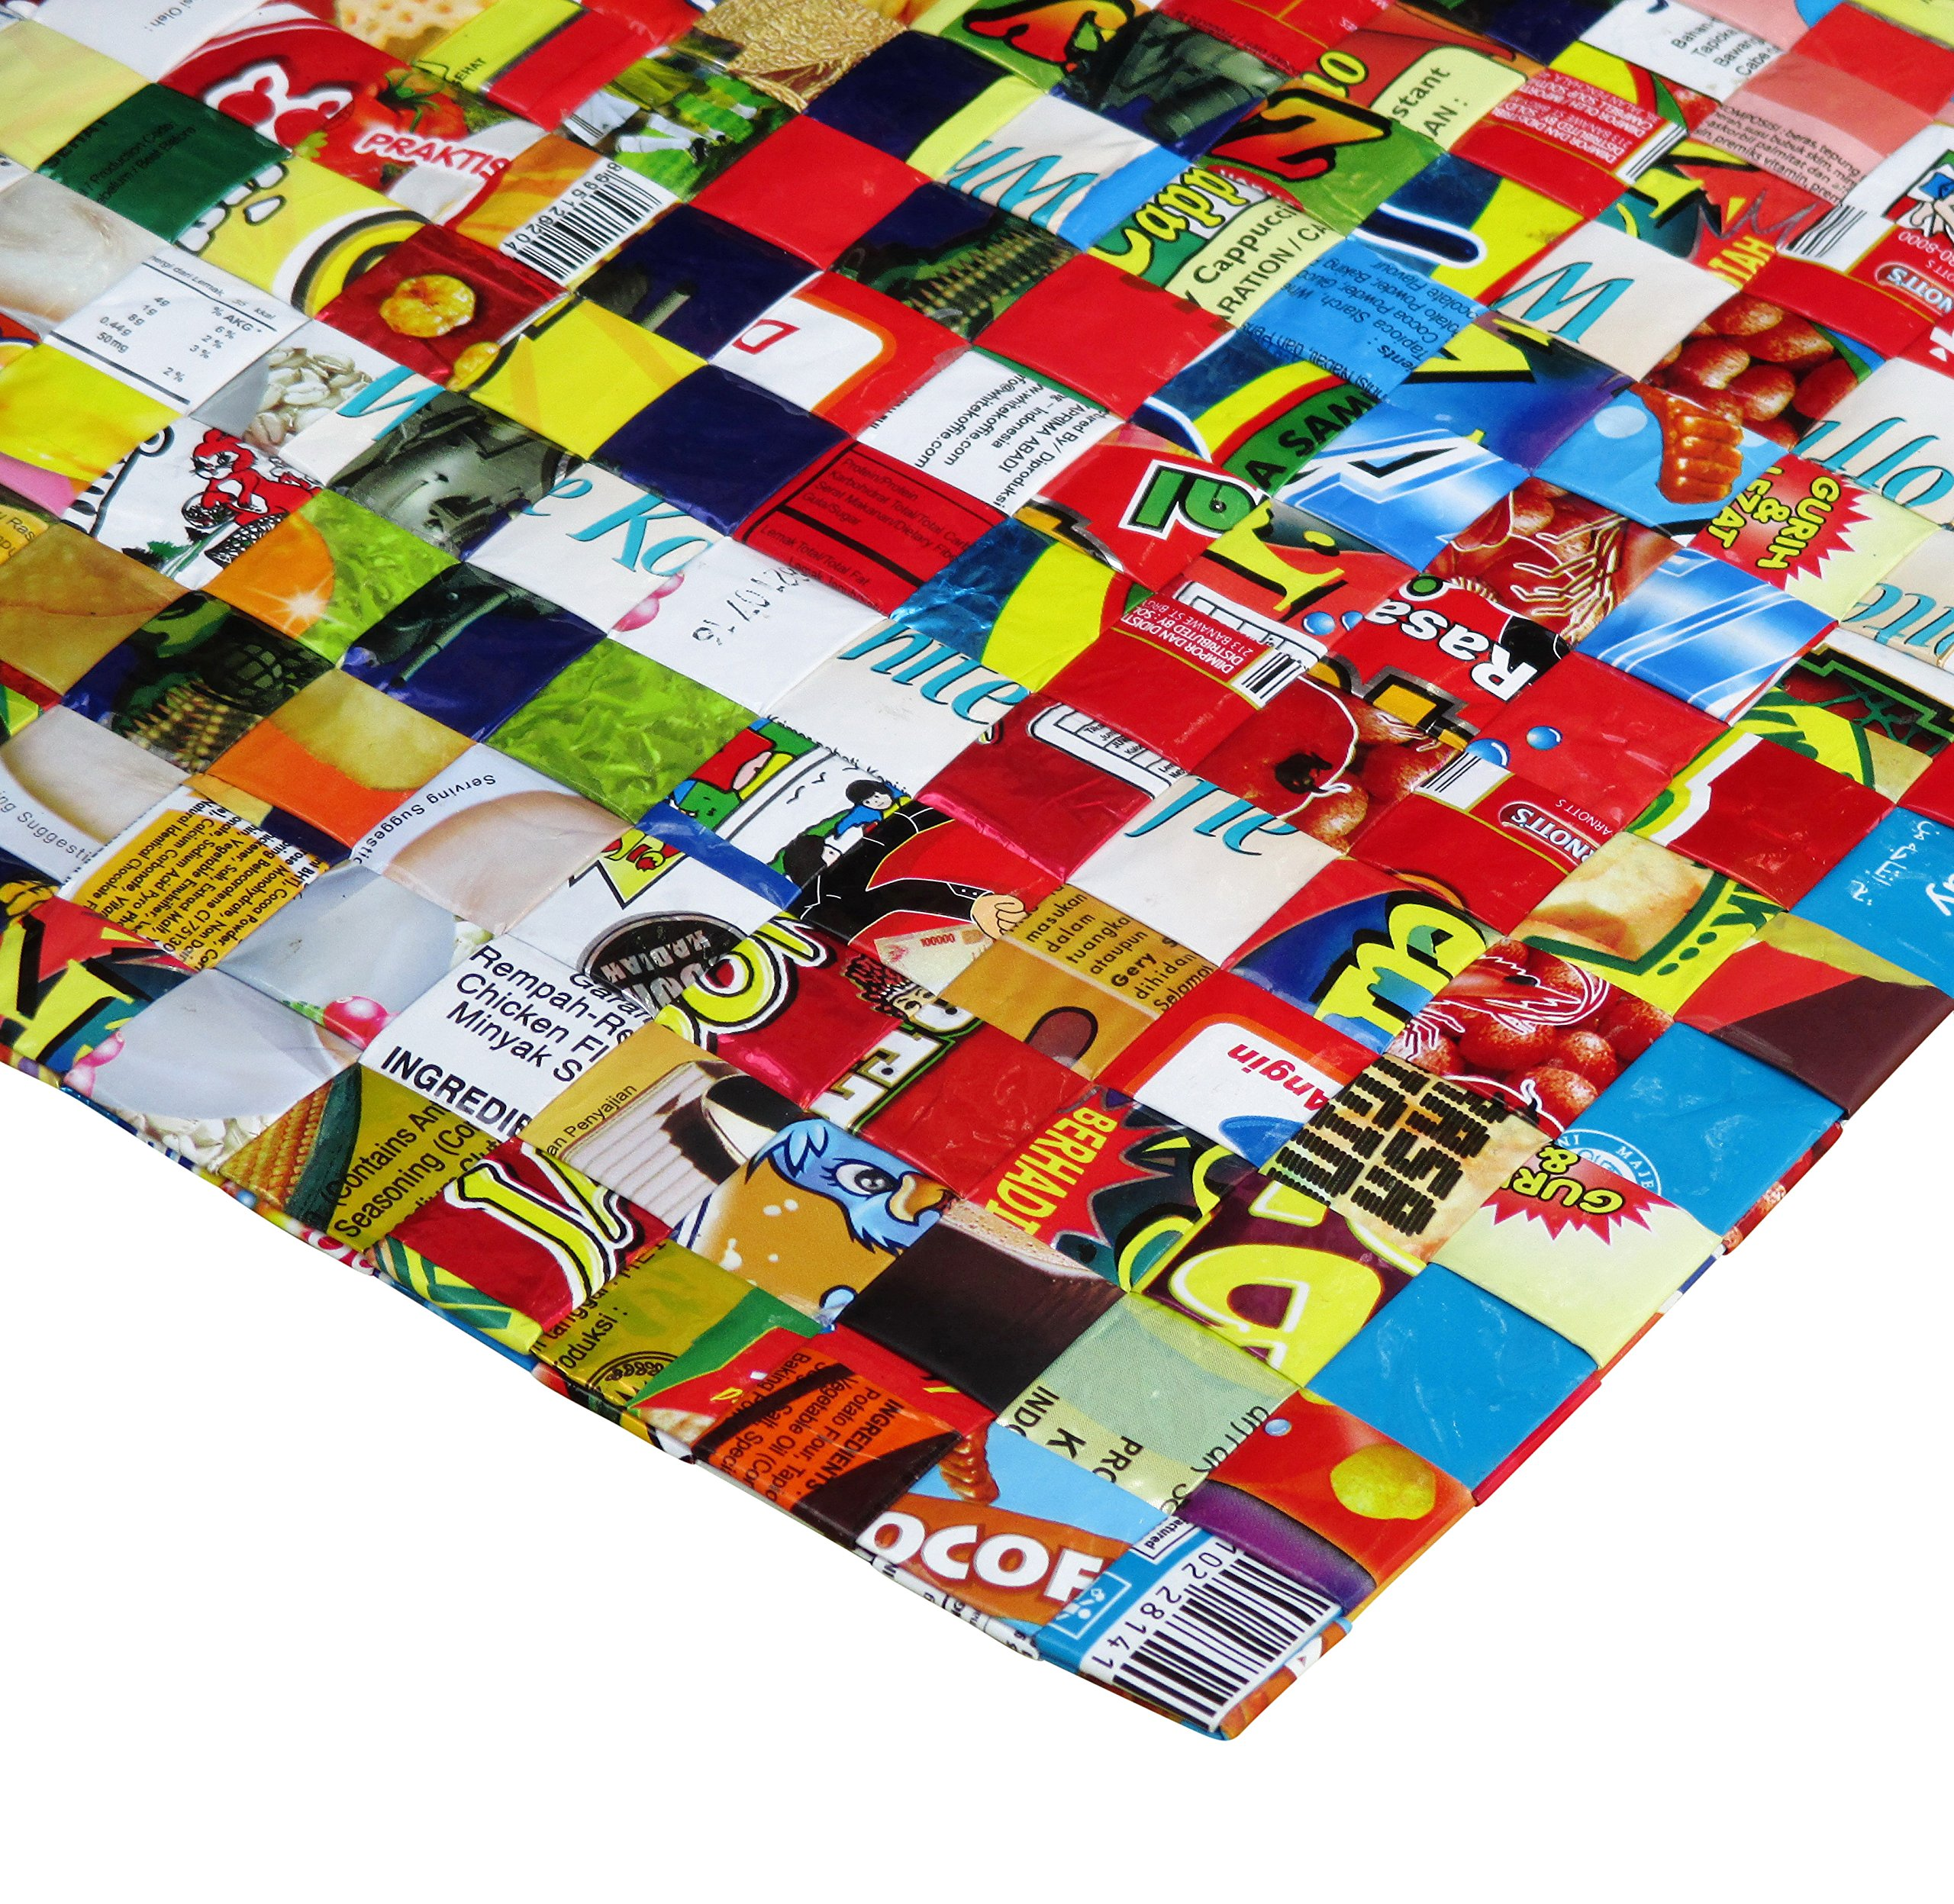 Set of 5 large placemats made from candy wrappers - Free shipping, decoration interior design sweets wrapper Fair trade ethical fun present presents cute finds inspiring alternative ideas functional